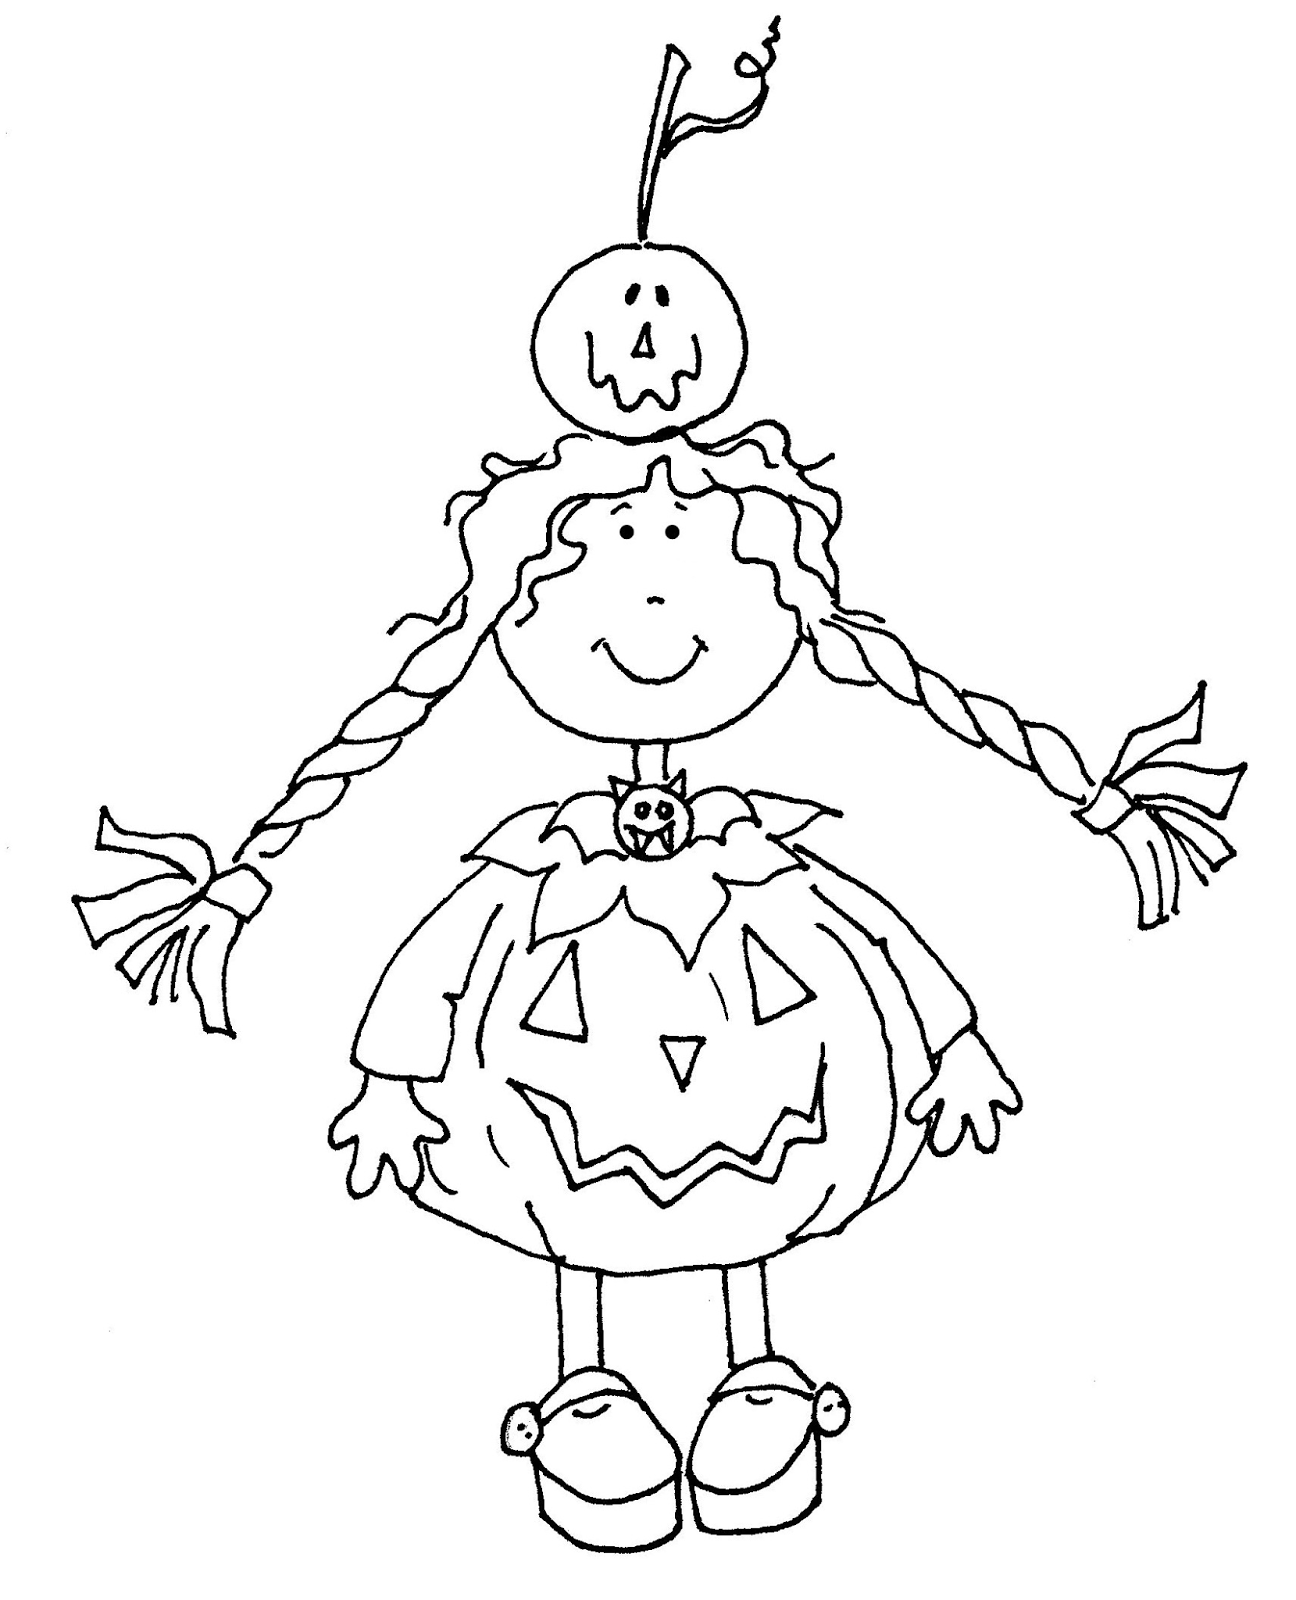 Free Dearie Dolls Digi Stamps Pumpkin Costume Girl Color Me Pretty